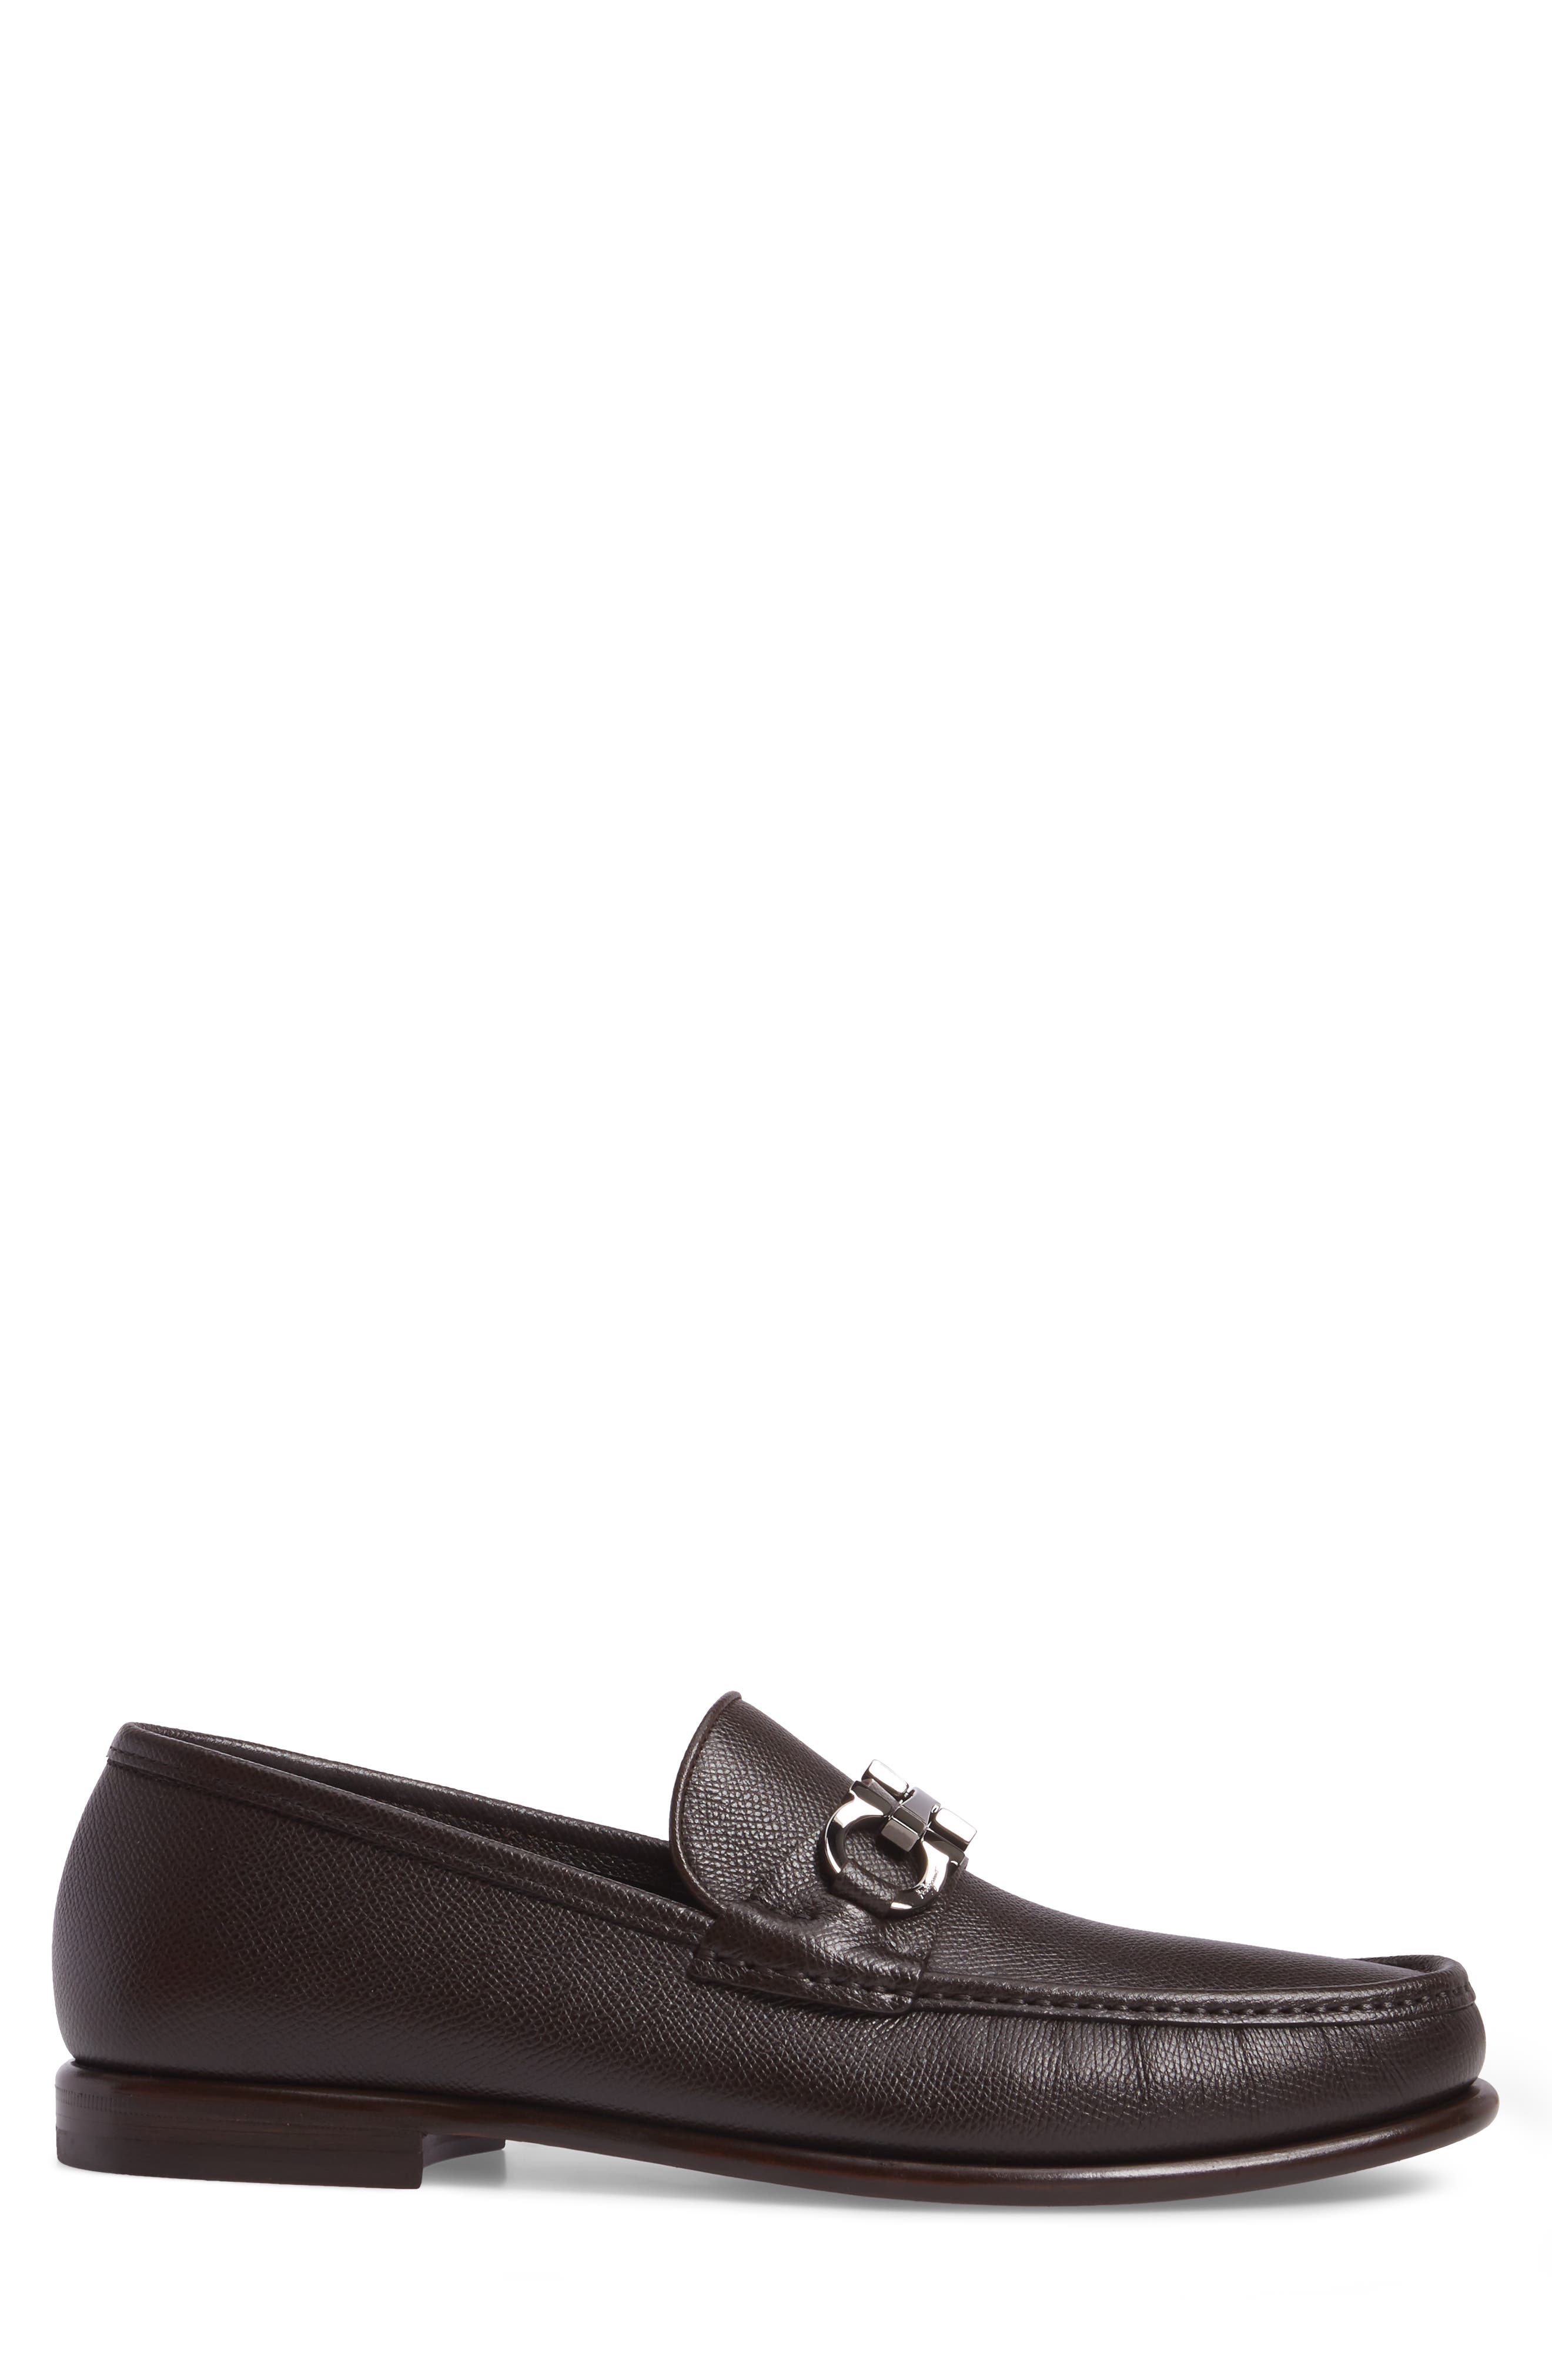 Crown Bit Loafer,                             Alternate thumbnail 3, color,                             T.Moro